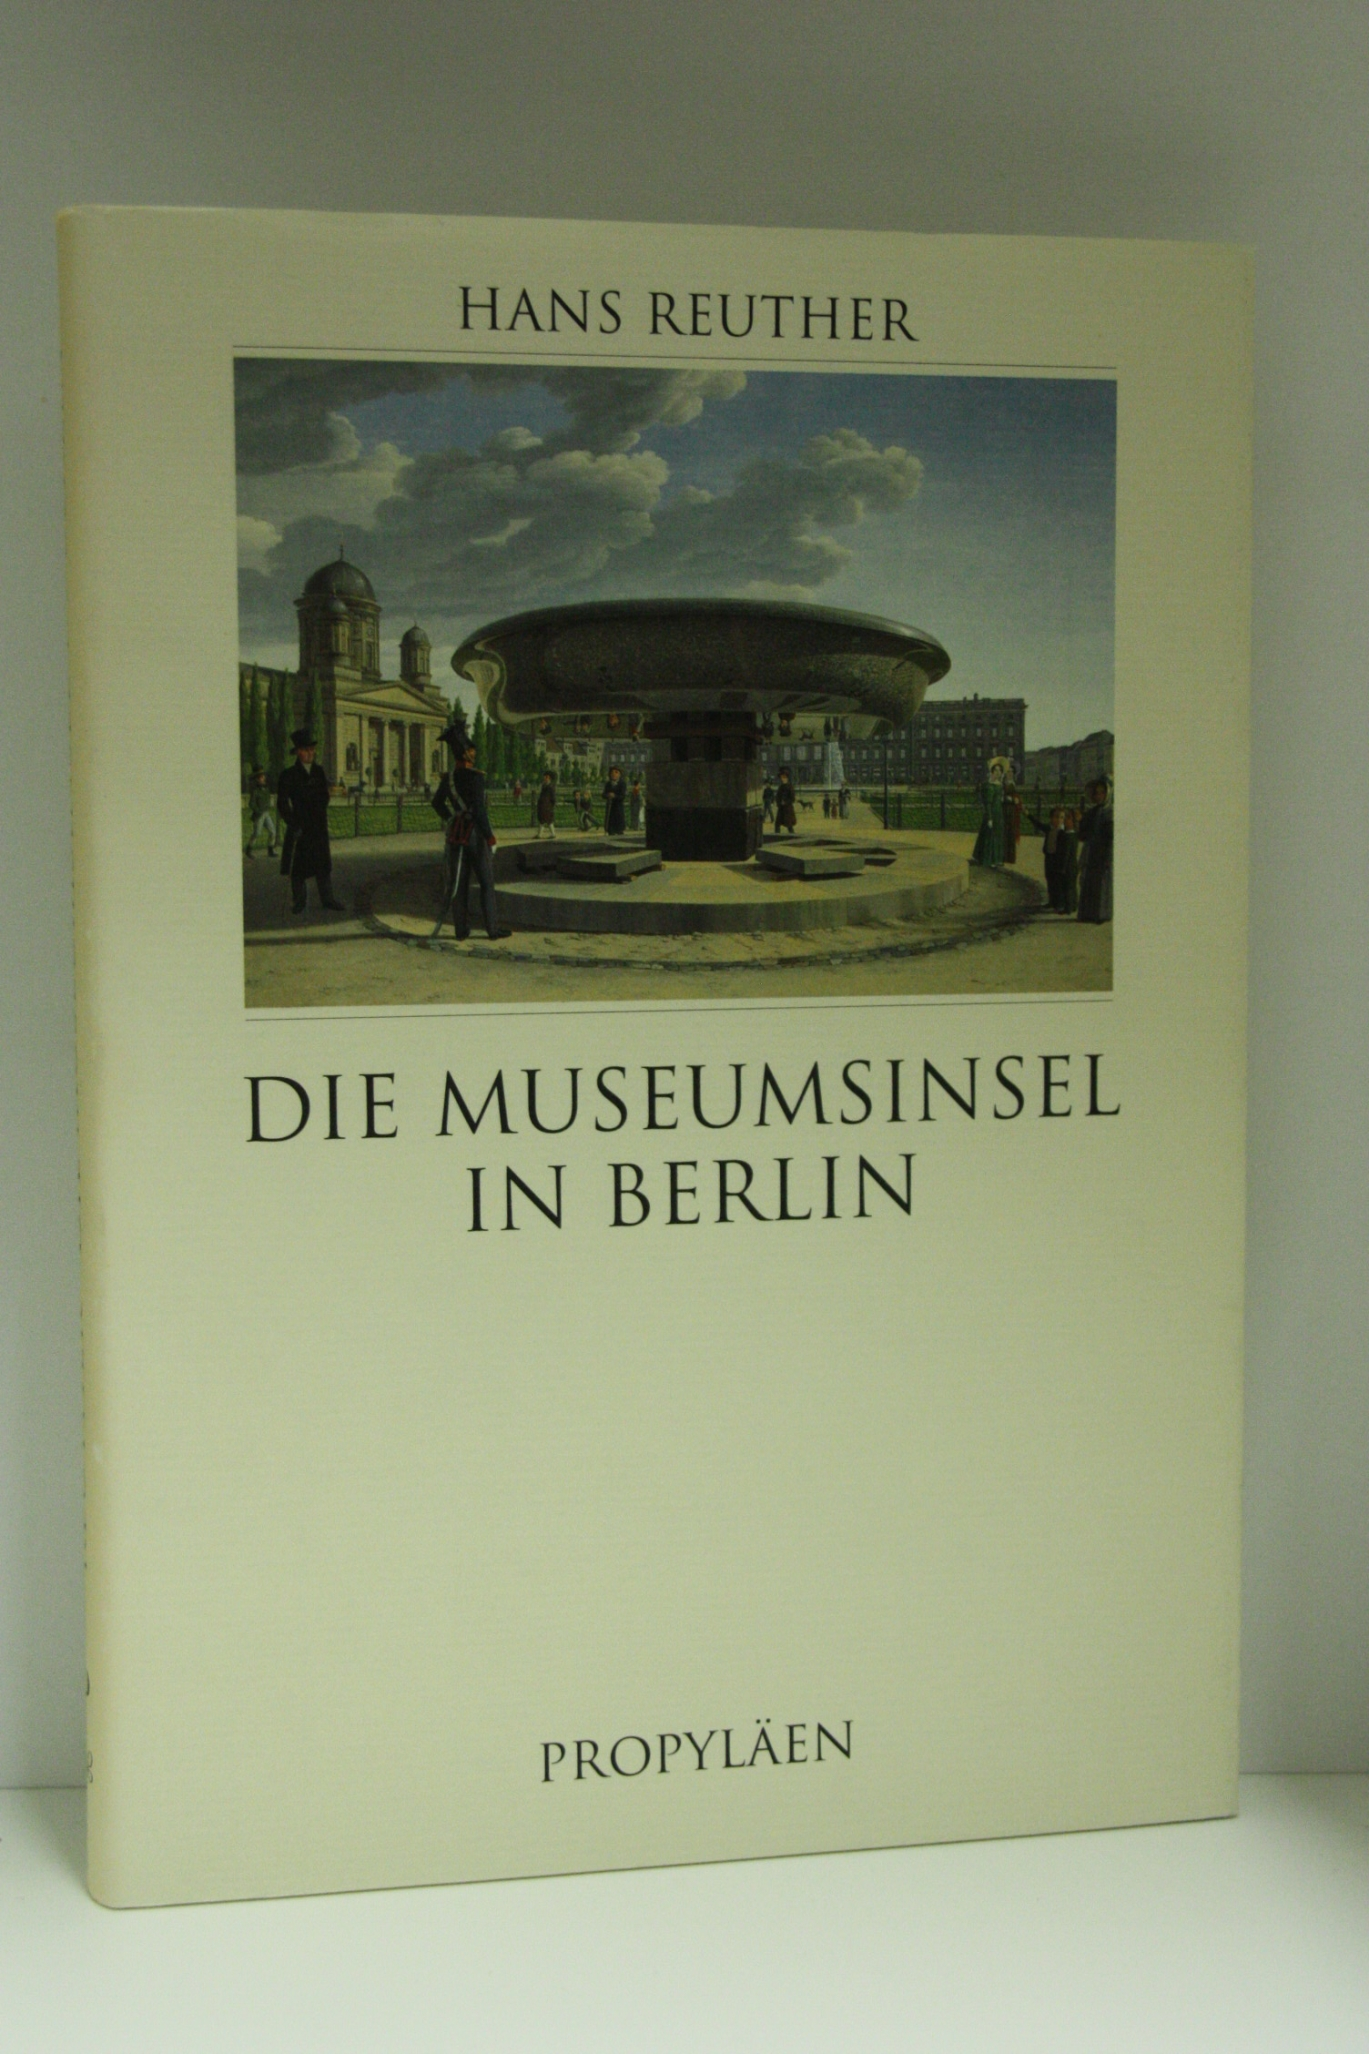 Reuther, Hans: Die Museumsinsel in Berlin